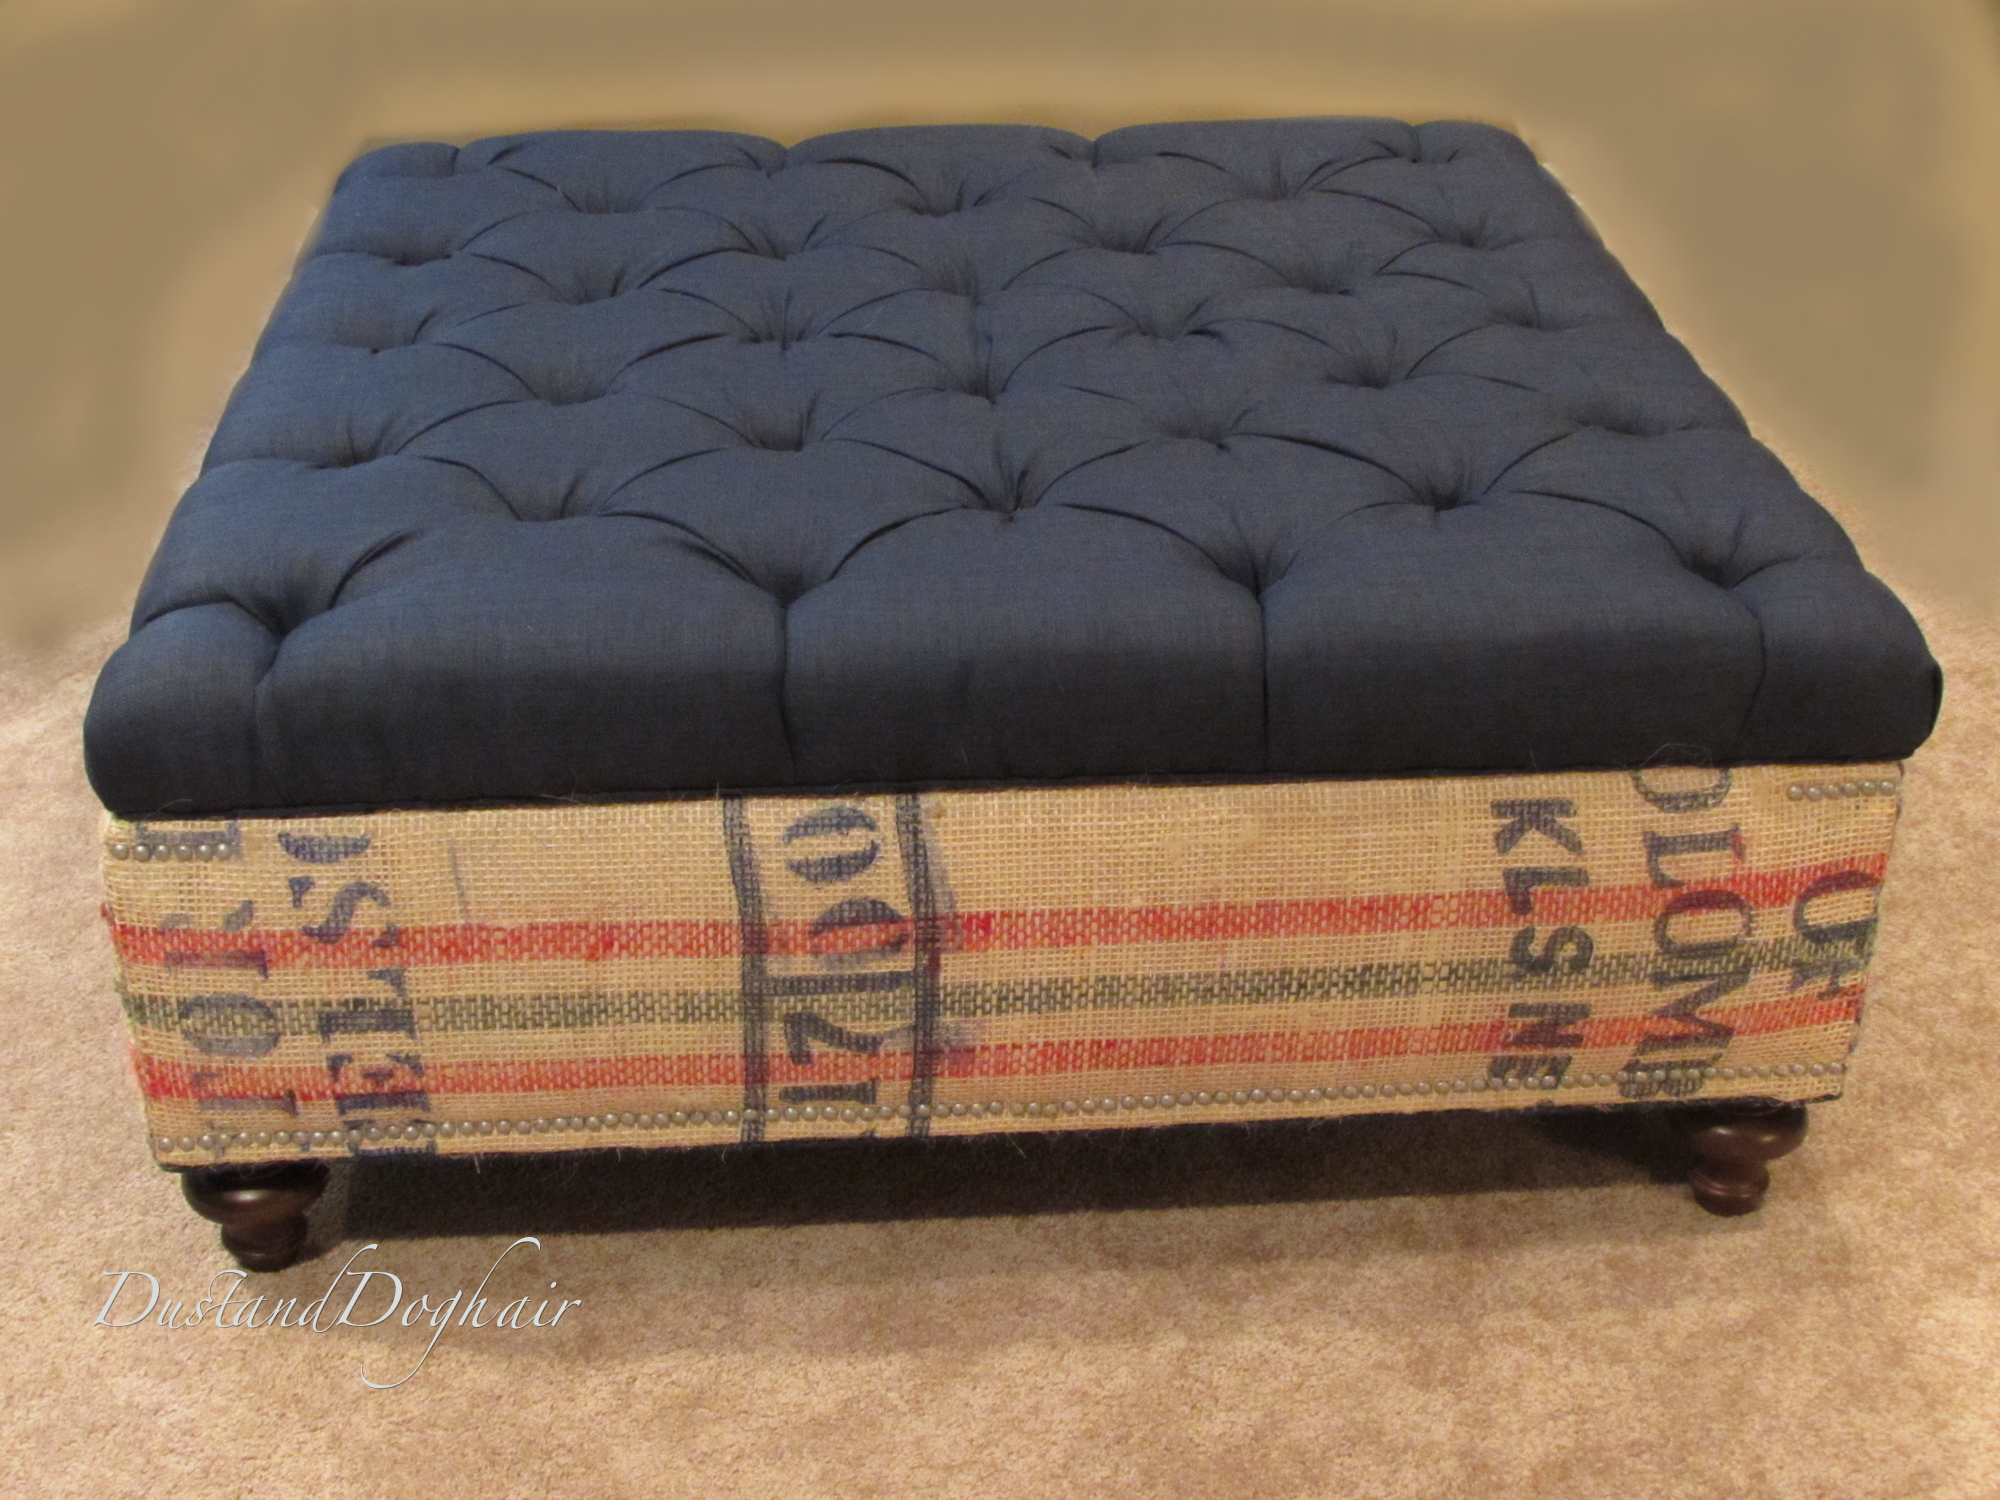 diy tufted top storage ottoman with repurposed coffee sacks diy tufted top storage ottoman with repurposed coffee sacks dustanddoghair com